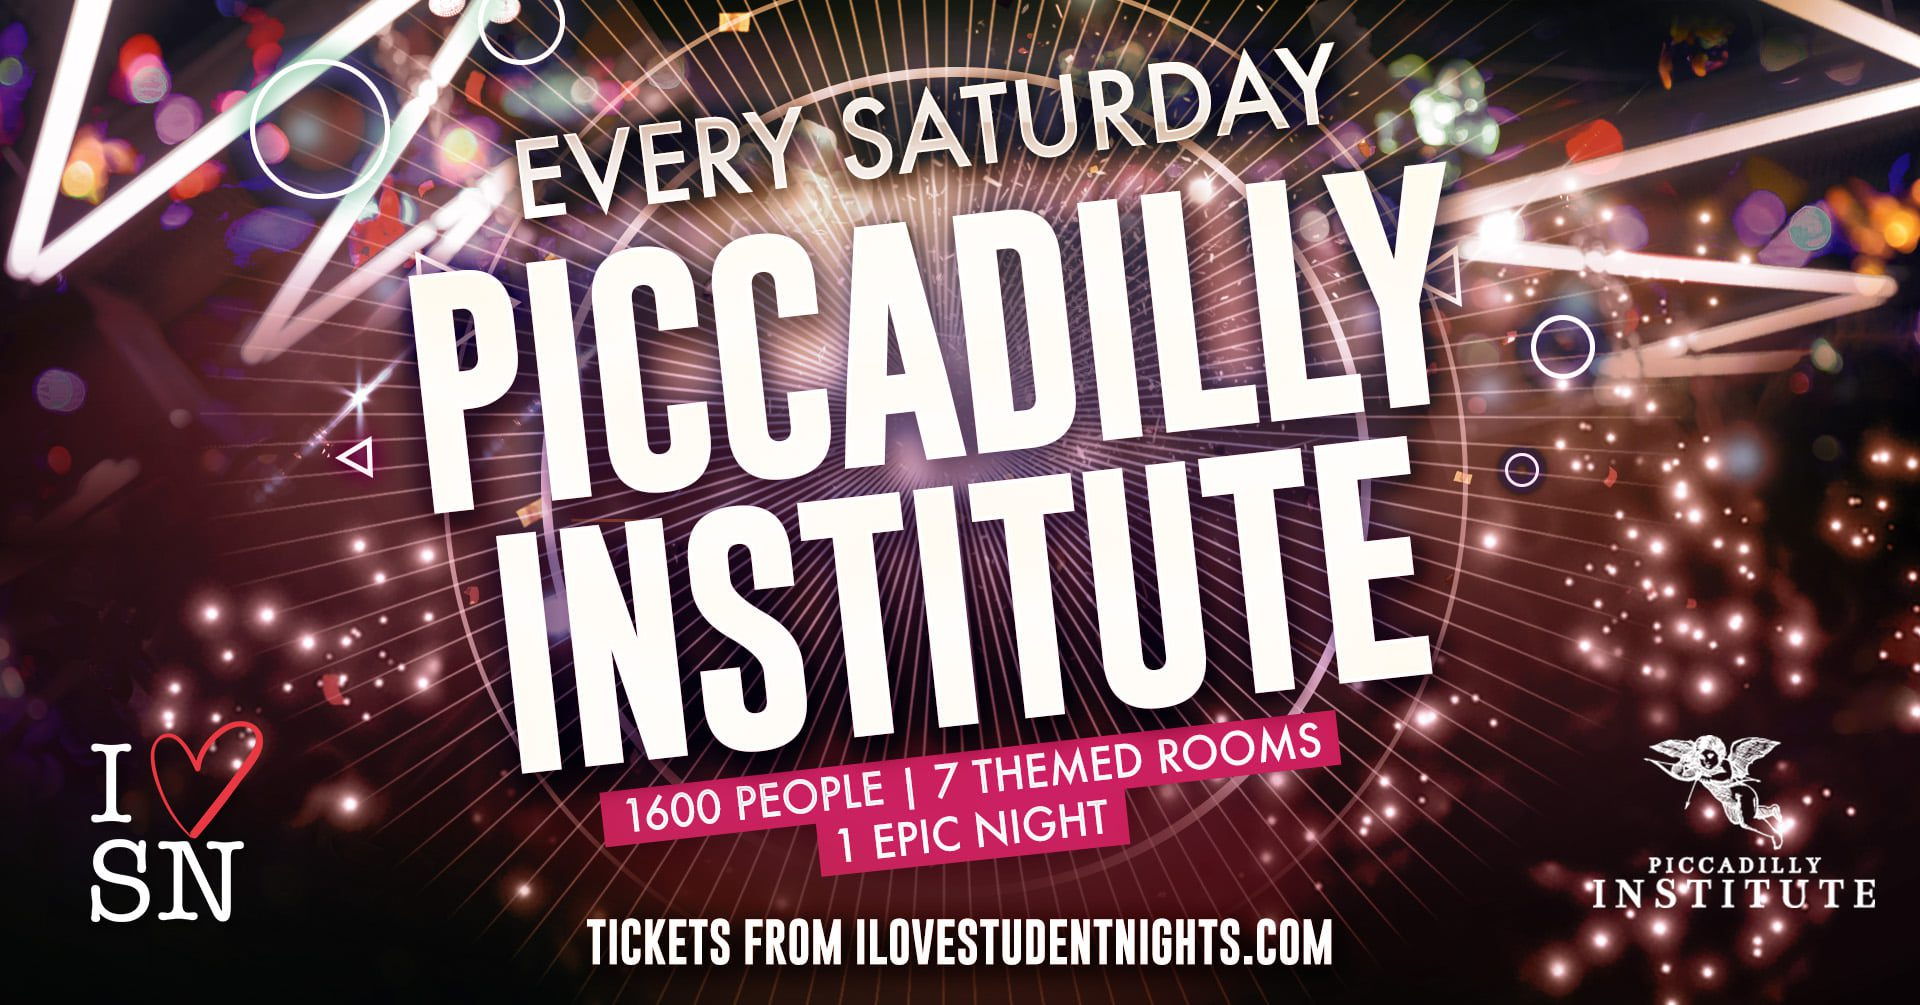 Piccadilly Institute every Saturday